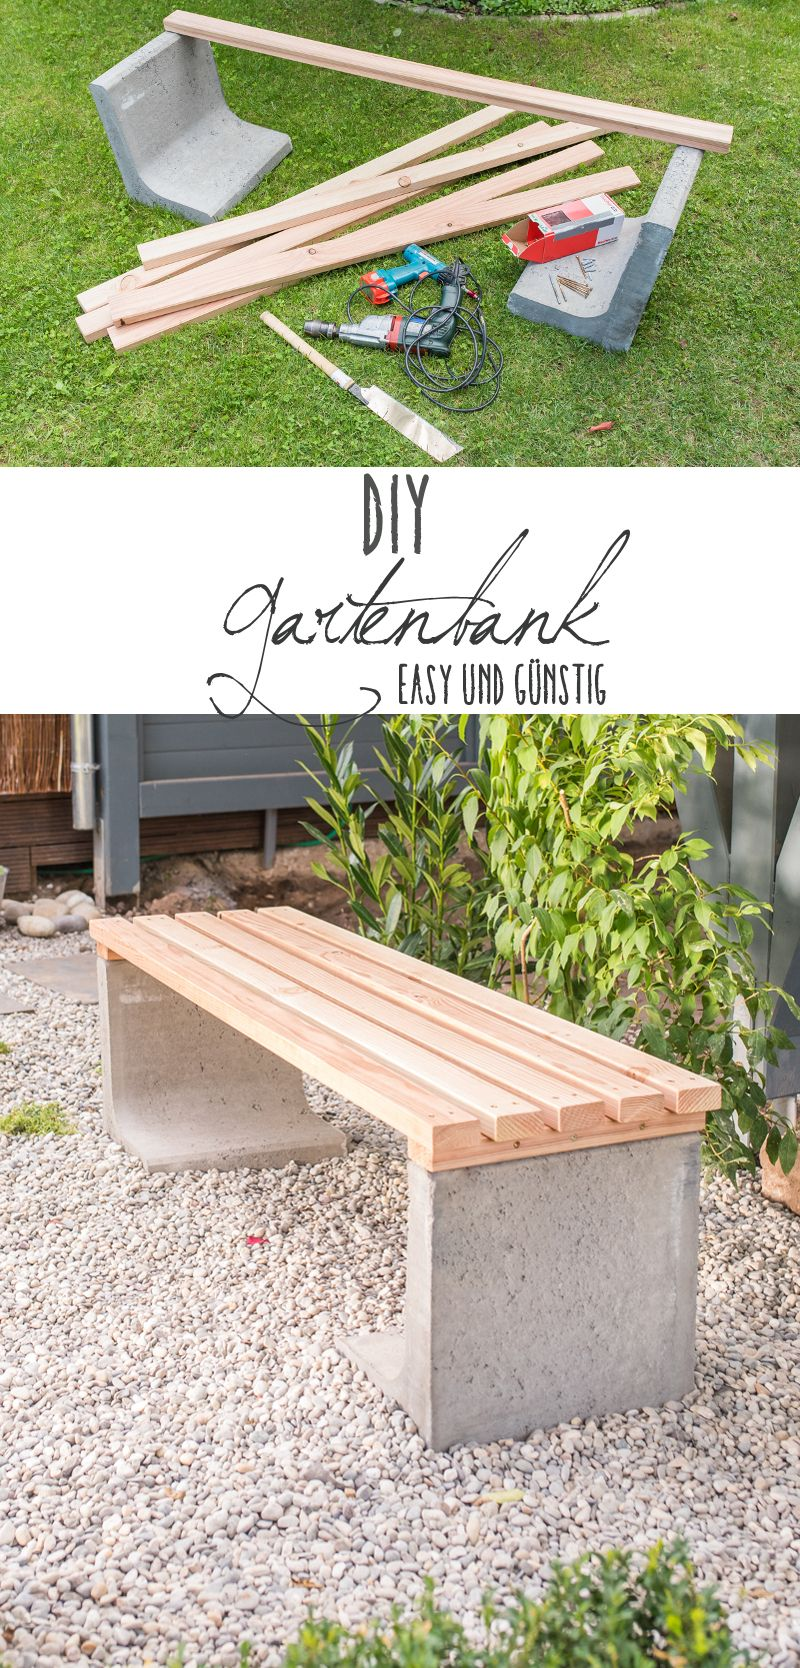 diy gartenbank mit beton und holz gardens garten and. Black Bedroom Furniture Sets. Home Design Ideas